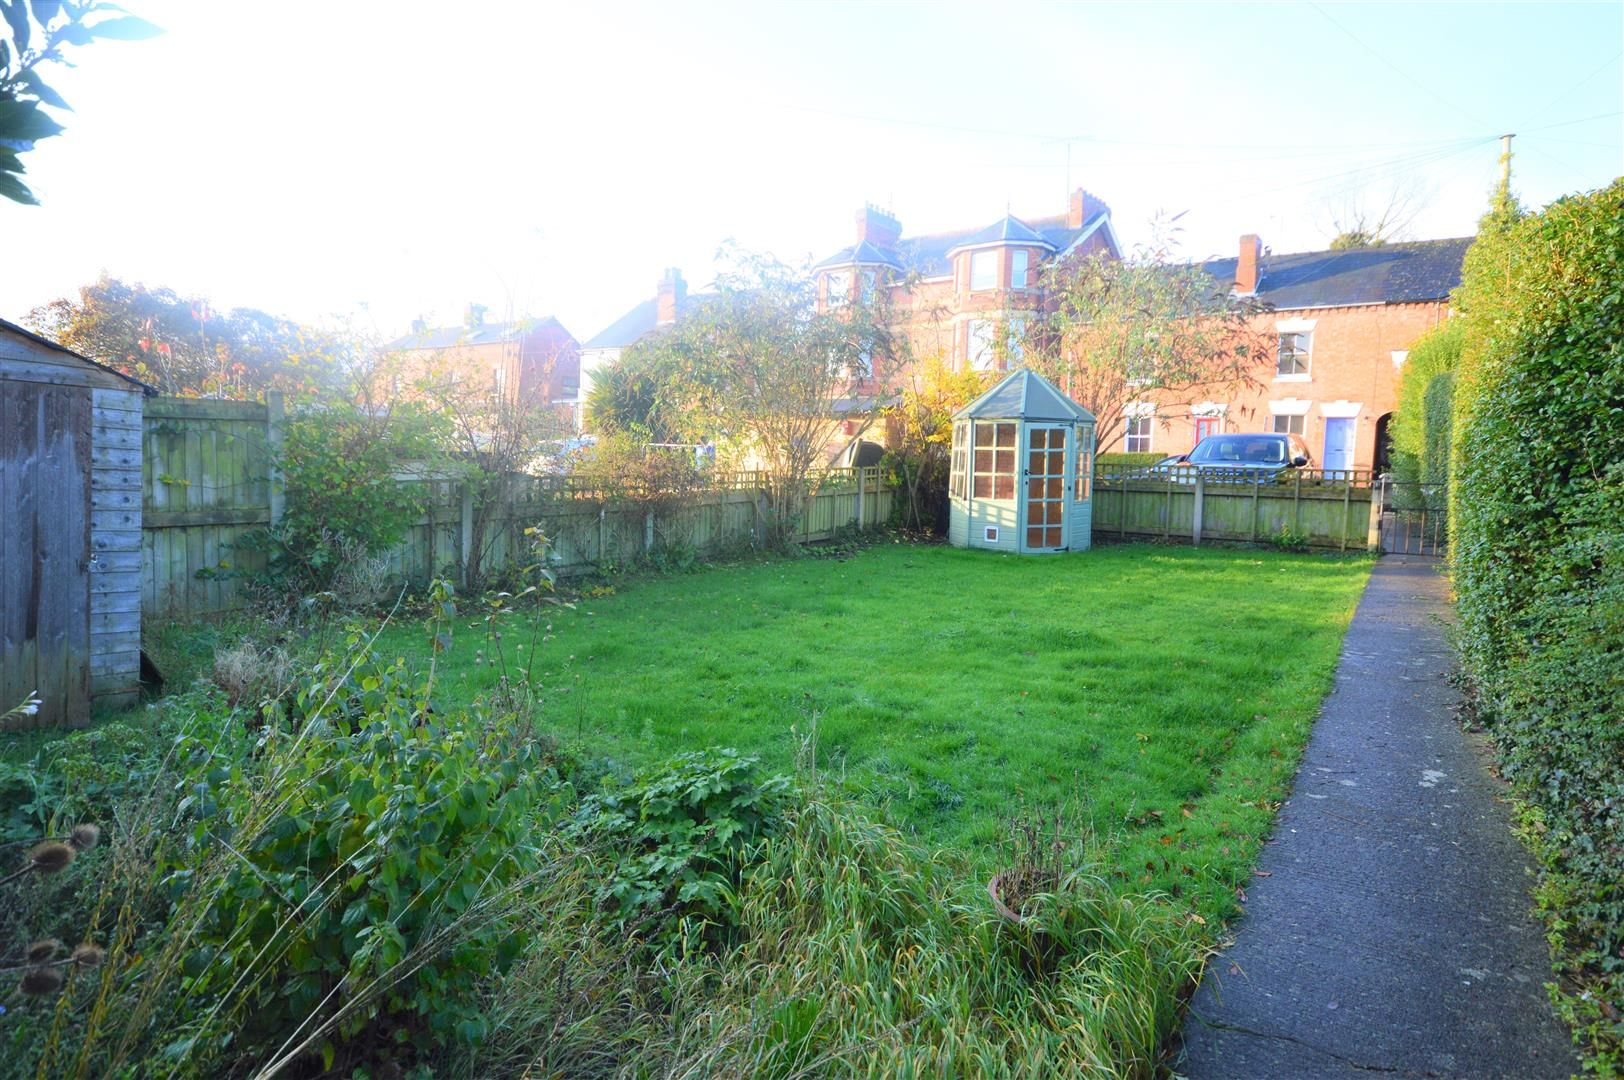 3 bed end-of-terrace for sale in Leominster  - Property Image 10